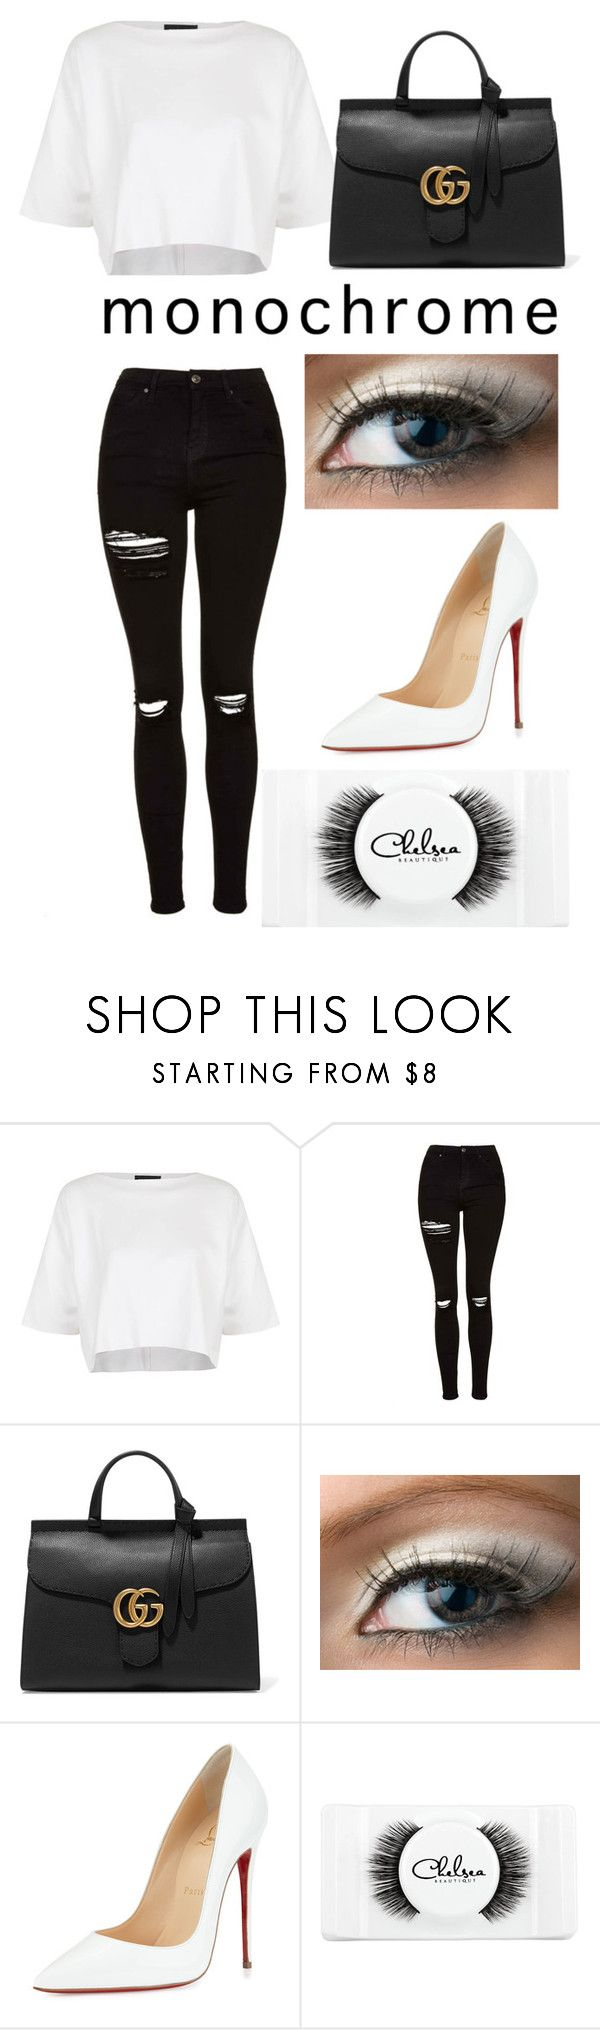 """#monochrome⚪️⚫️"" by abbyyd ❤ liked on Polyvore featuring Topshop, Gucci, Christian Louboutin, Chelsea Beautique and monochrome"